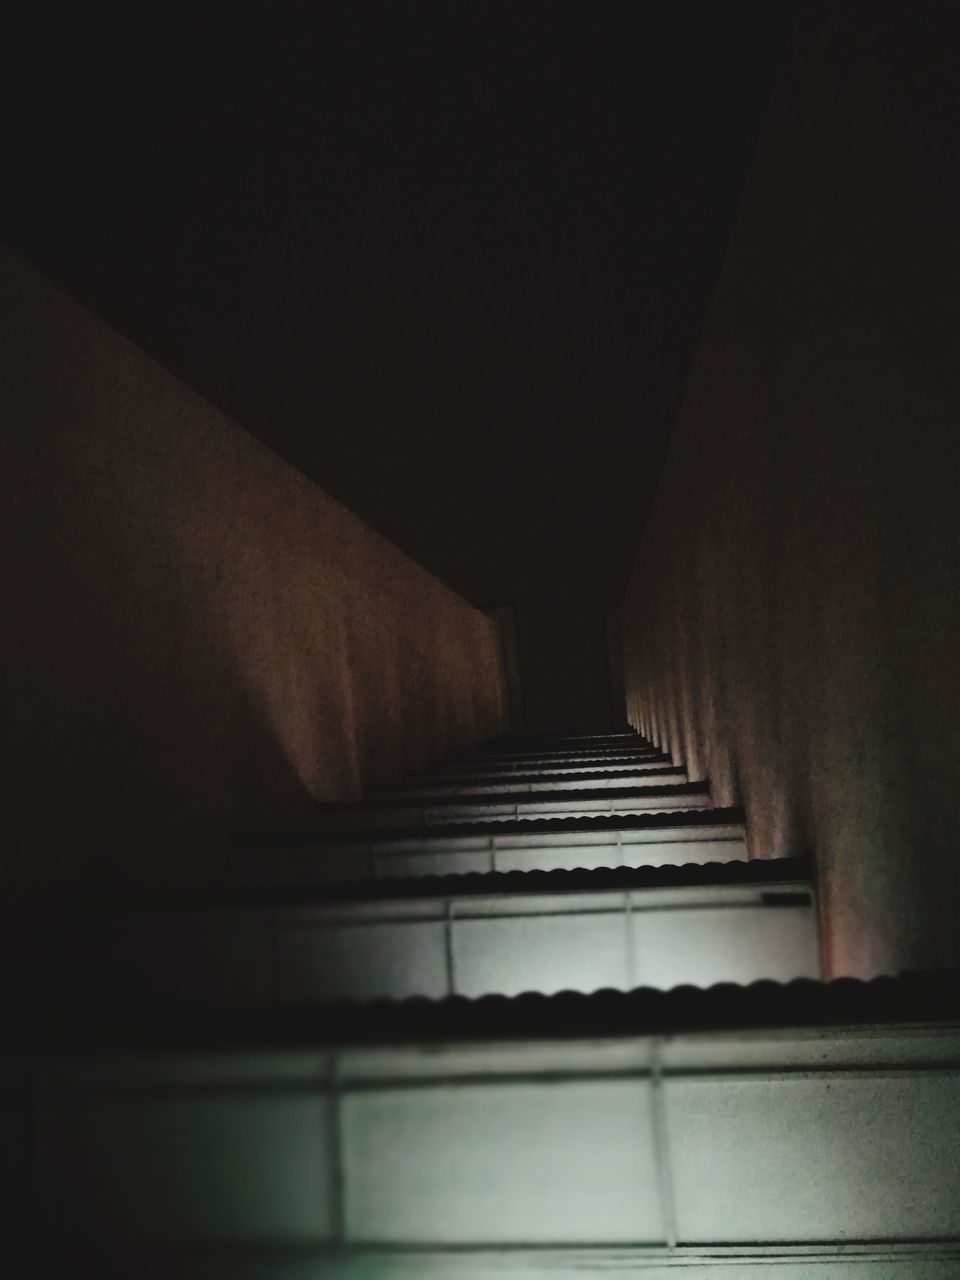 indoors, steps, steps and staircases, no people, illuminated, day, close-up